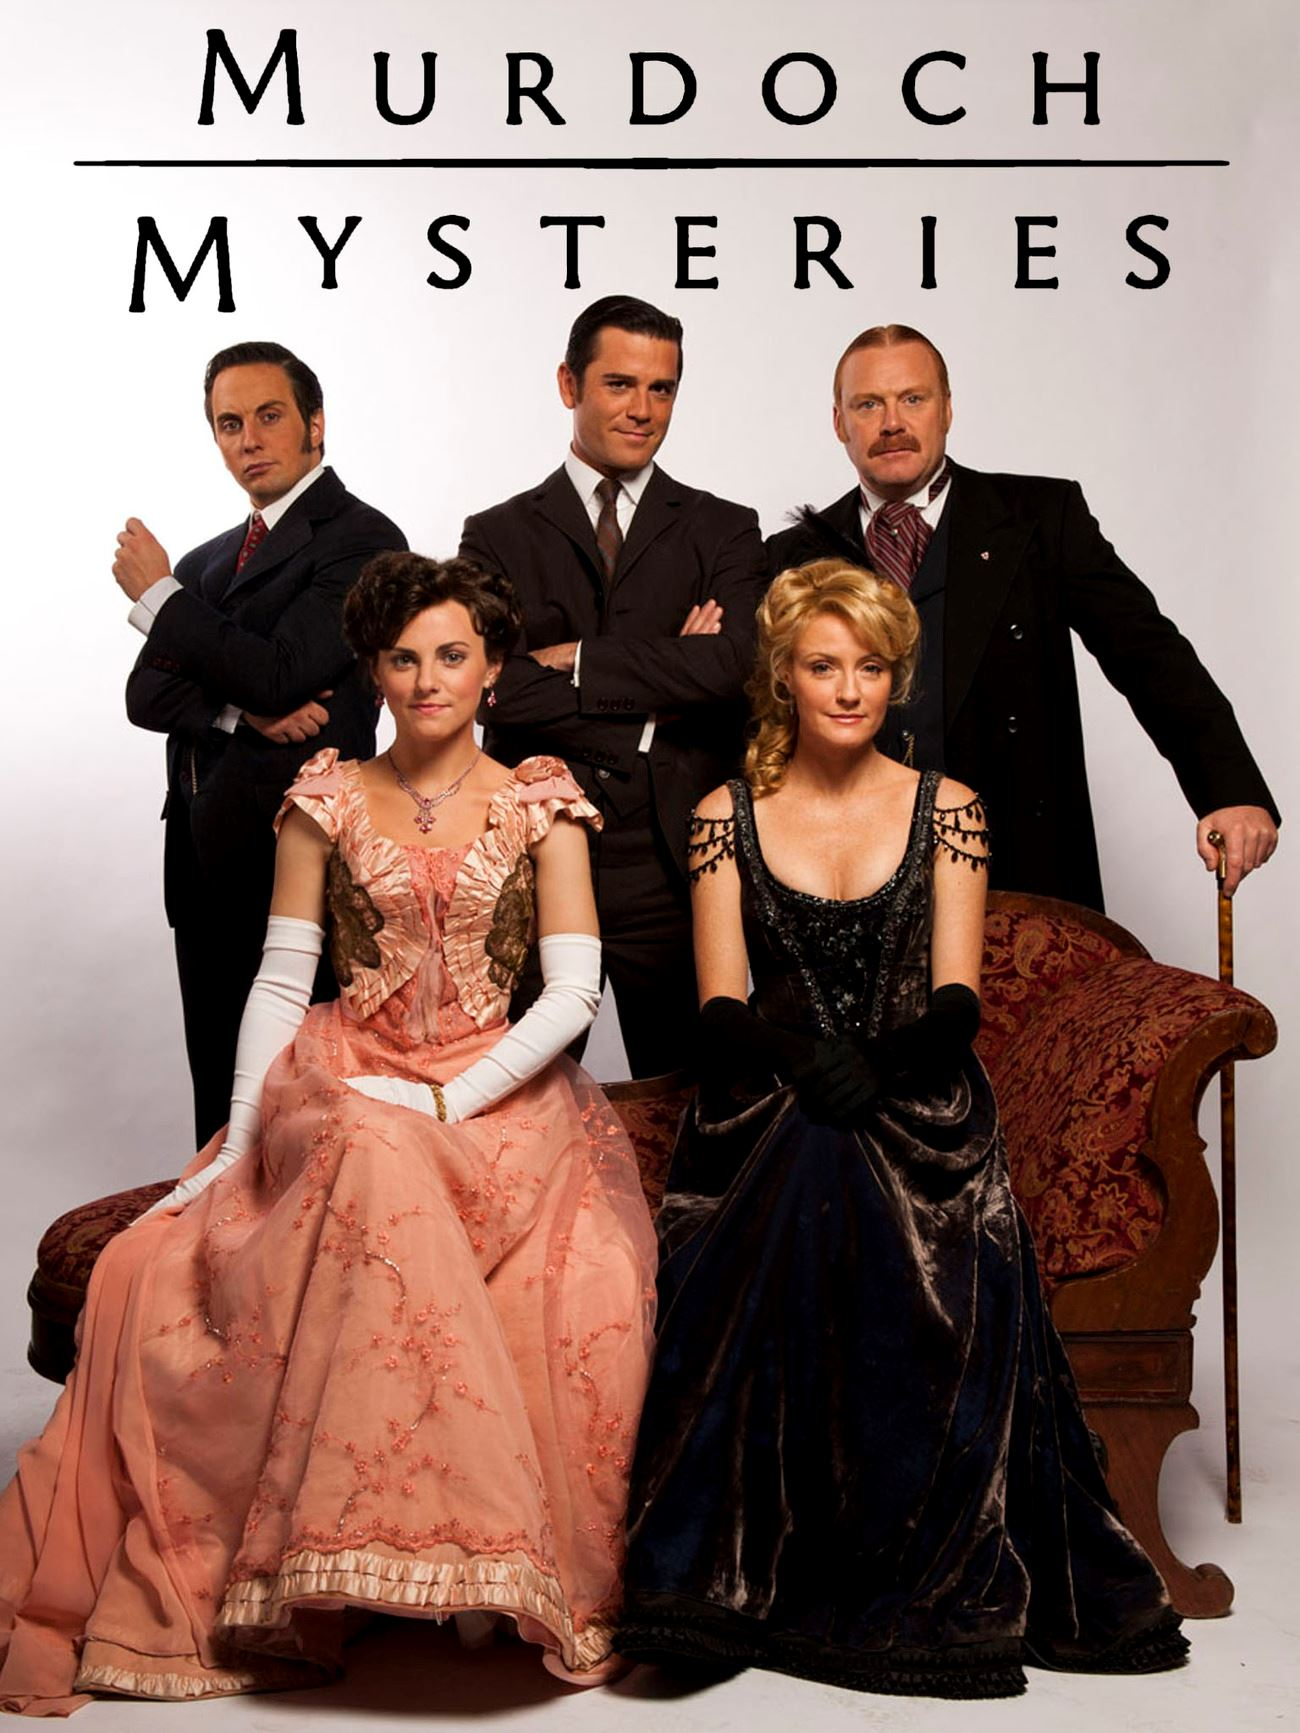 Murdoch Mysteries DVD Cover